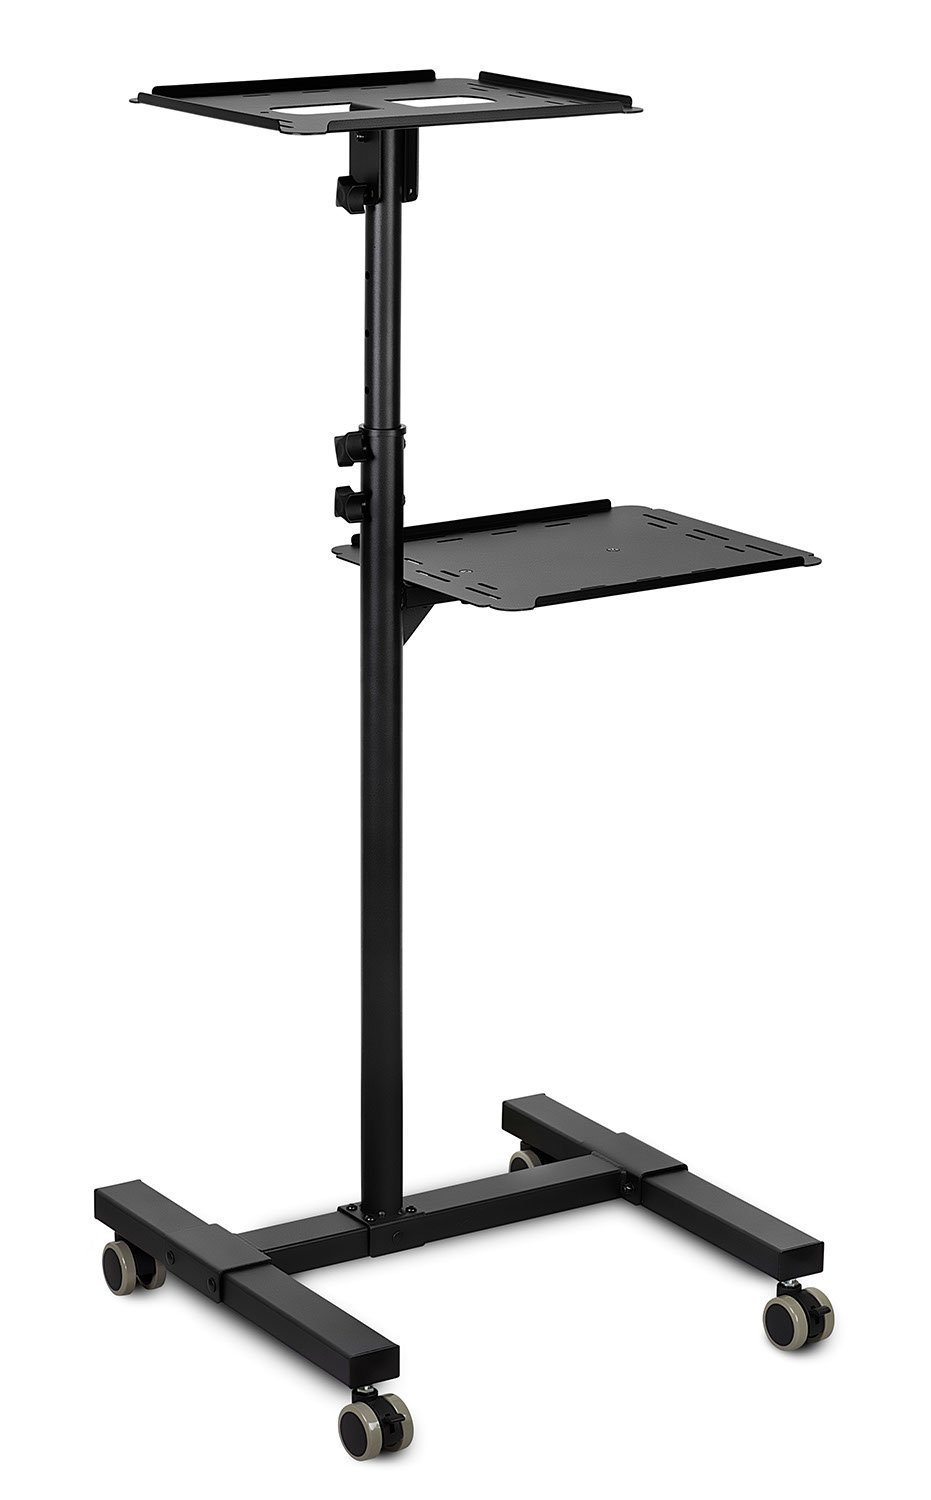 Mount-It! Mobile Projector Stand, Height-Adjustable Laptop and Projector Presentation Cart